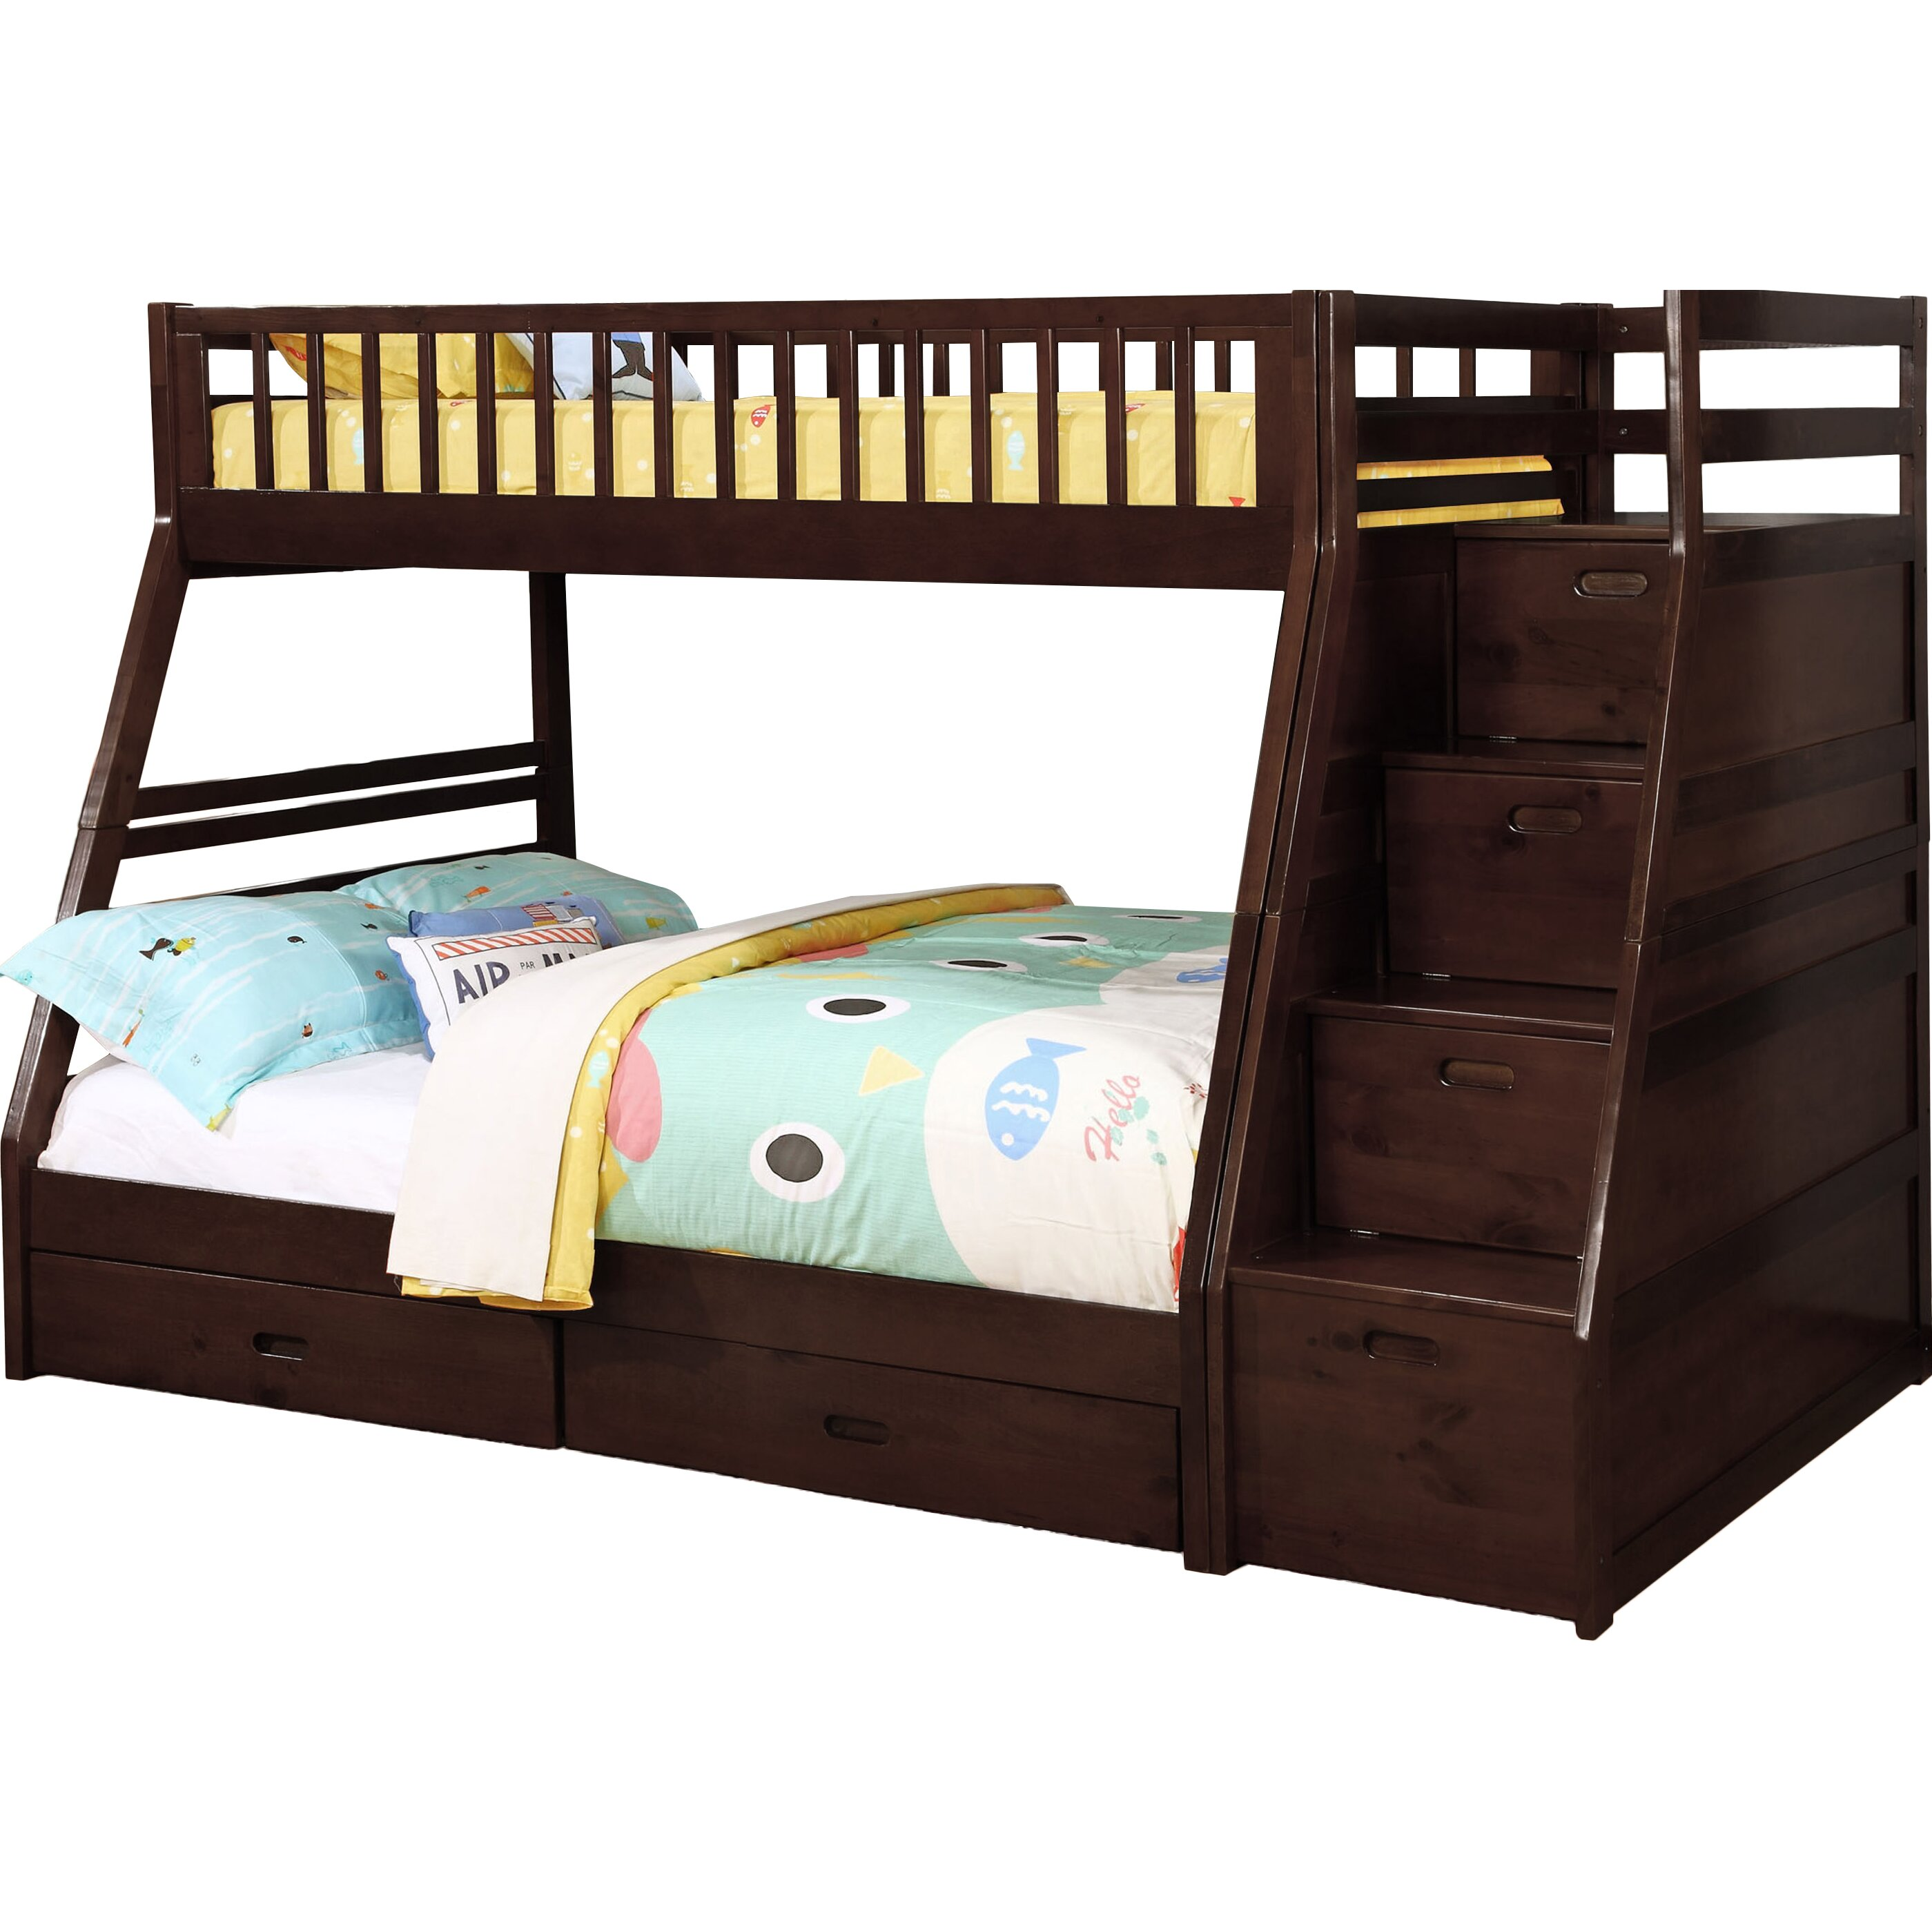 Best 25 Twin Full Bunk Bed Ideas On Pinterest: Wildon Home ® Dakota Twin Over Full Bunk Bed With Storage